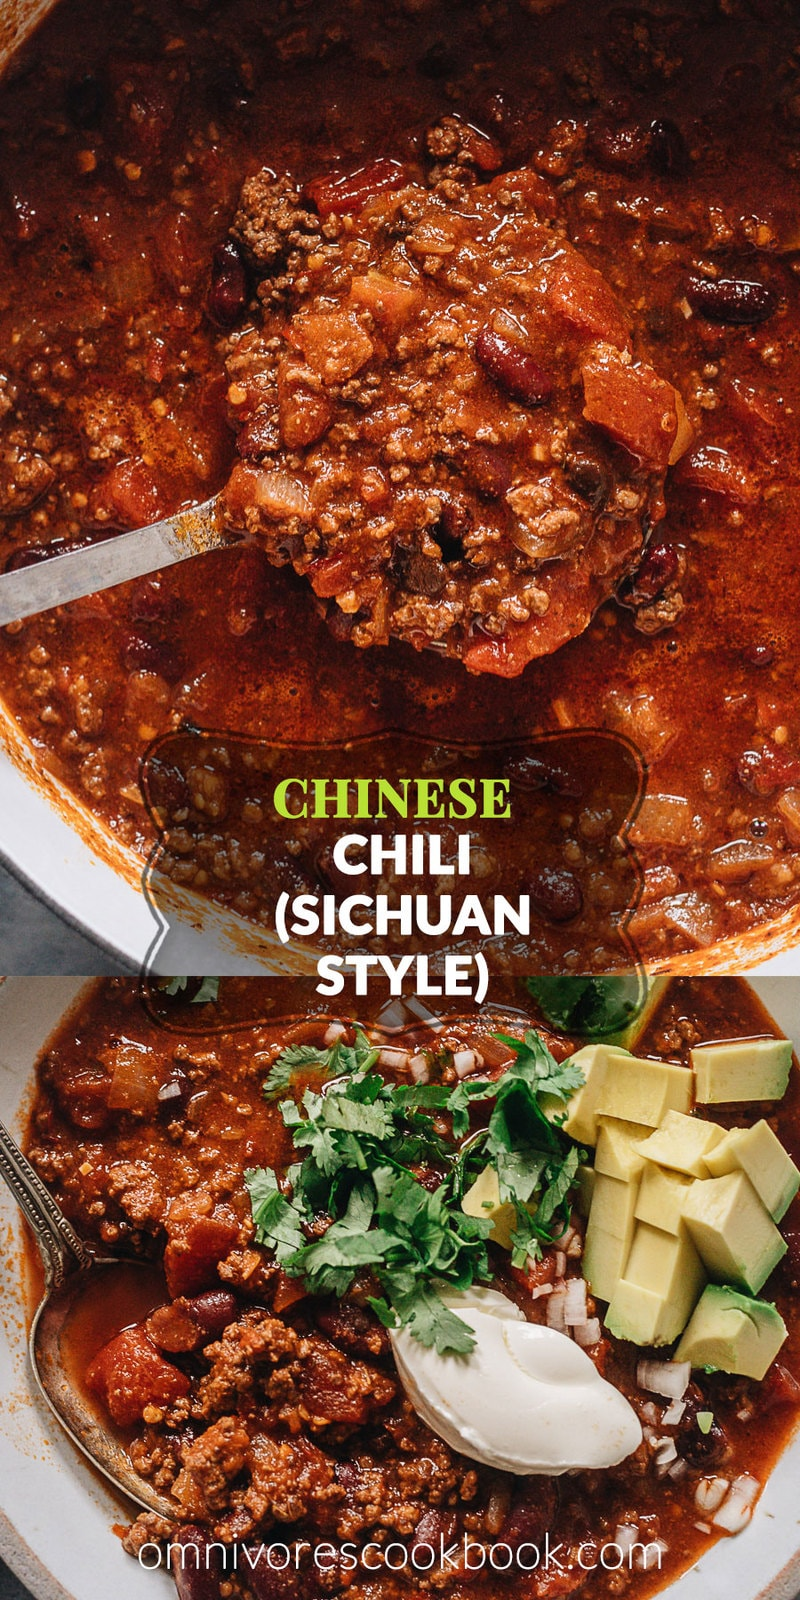 Chinese Chili (Sichuan Style) | Make a hearty pot of chili using Sichuan ingredients to create a super rich and deep umami while keeping the essence of a traditional chili. The recipe teaches you how to make a flavorful chili paste, but you can also use chili powder to make the recipe super easy.